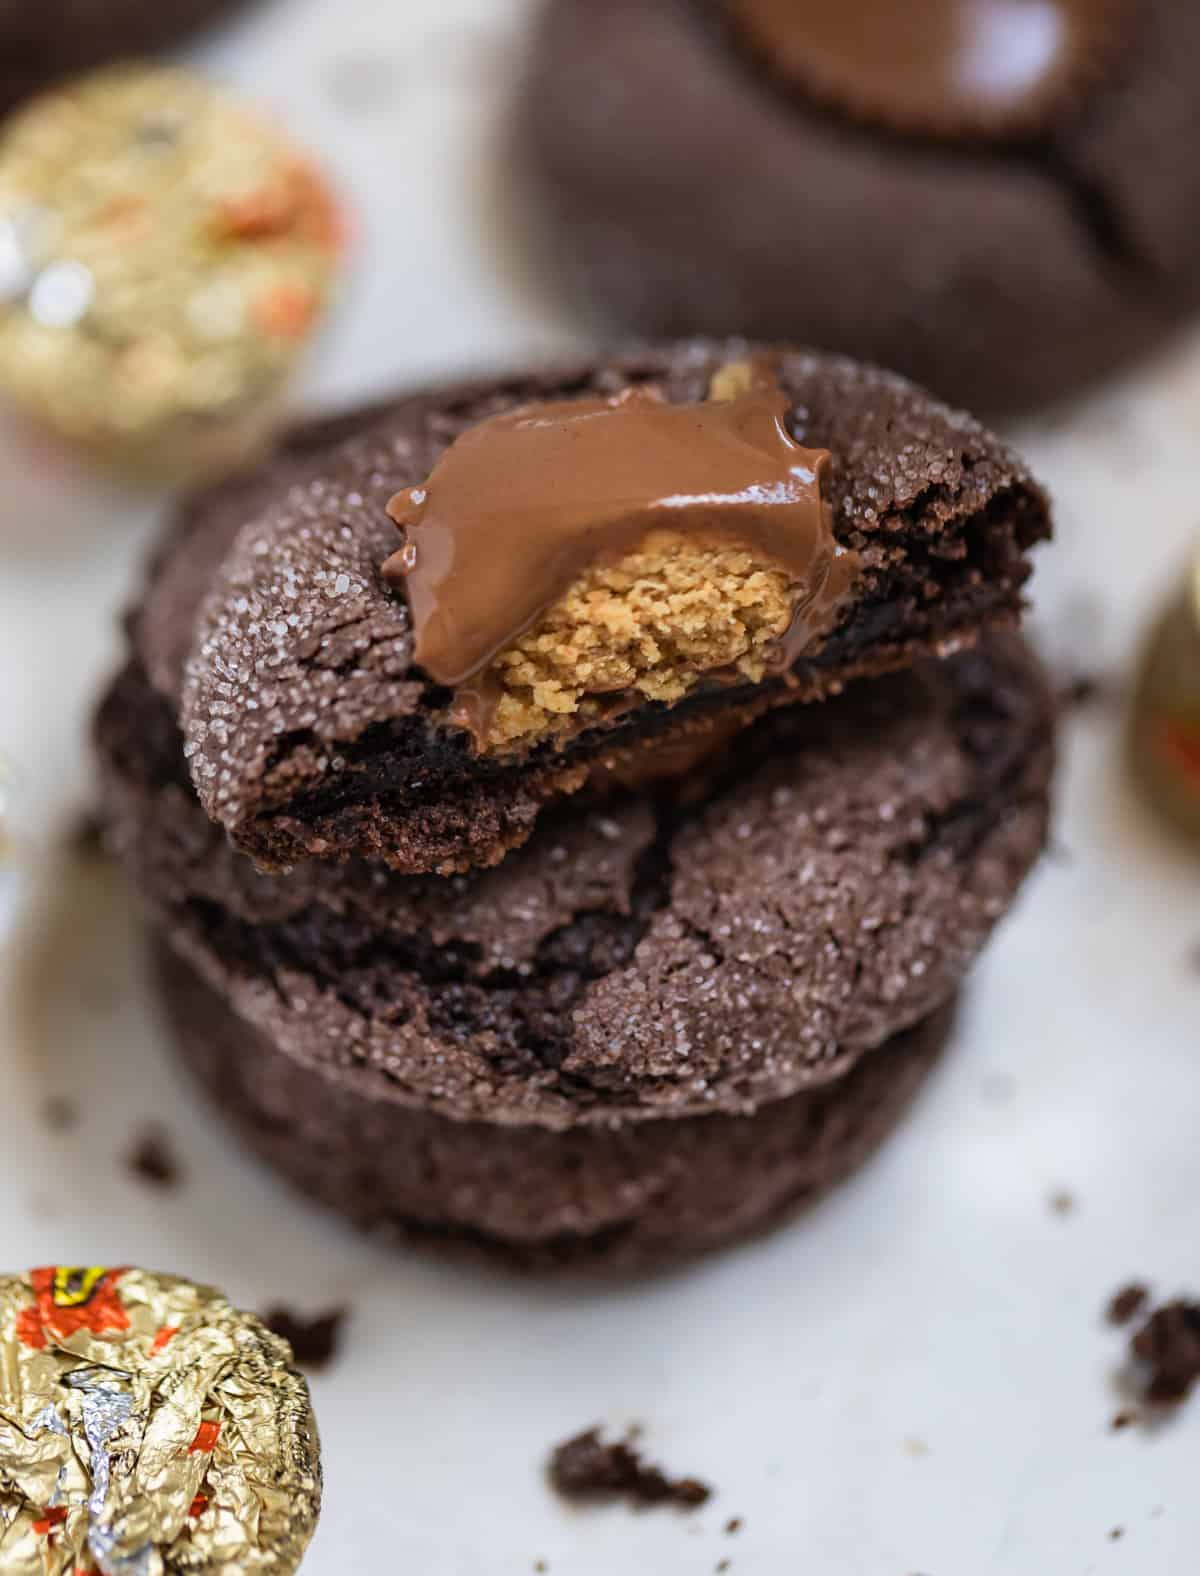 Chocolate cake mix cookie with Reese cup in center cut in half on stack of other cookies.